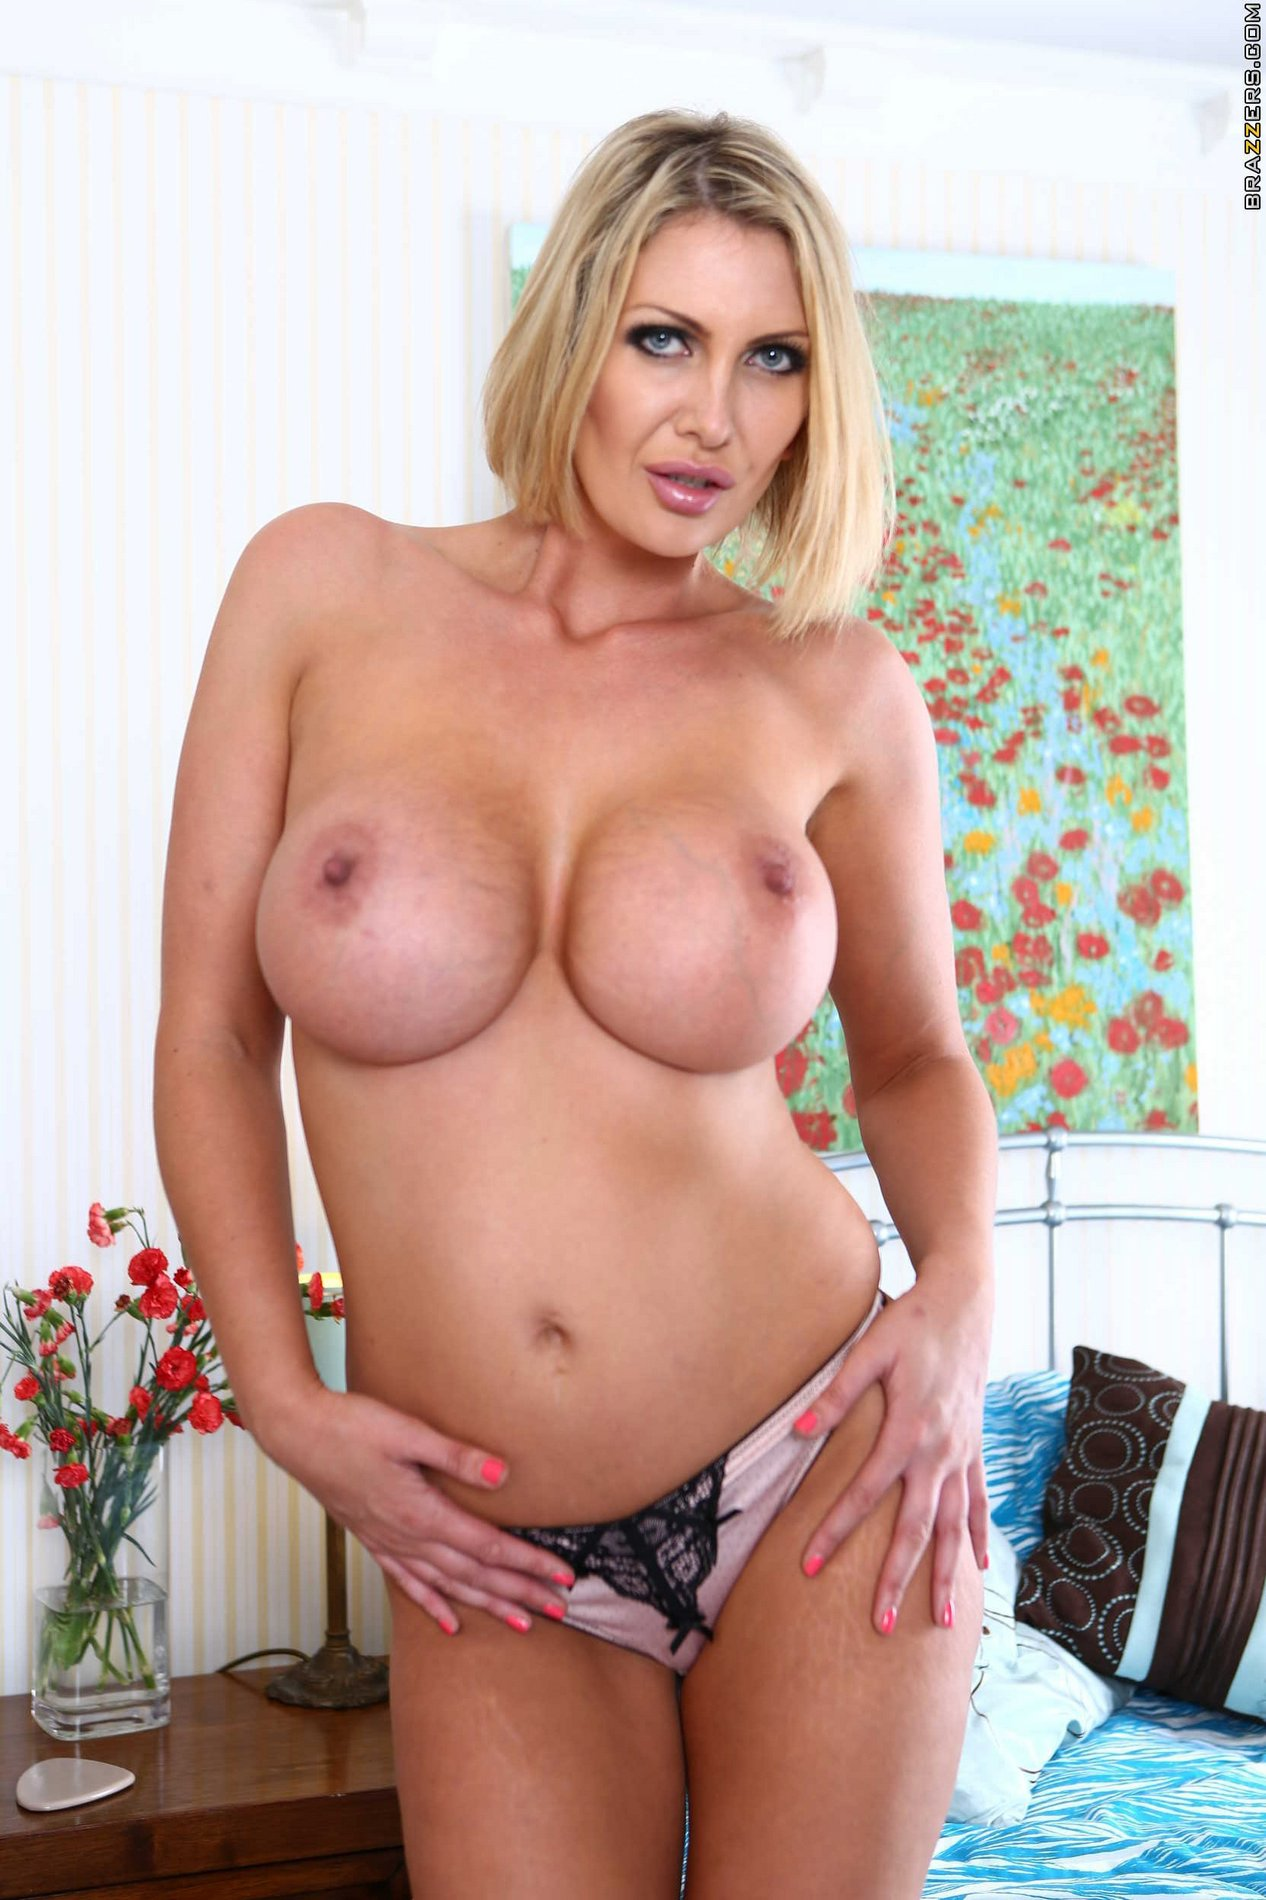 image Busty milf leigh darby being naughty as ever